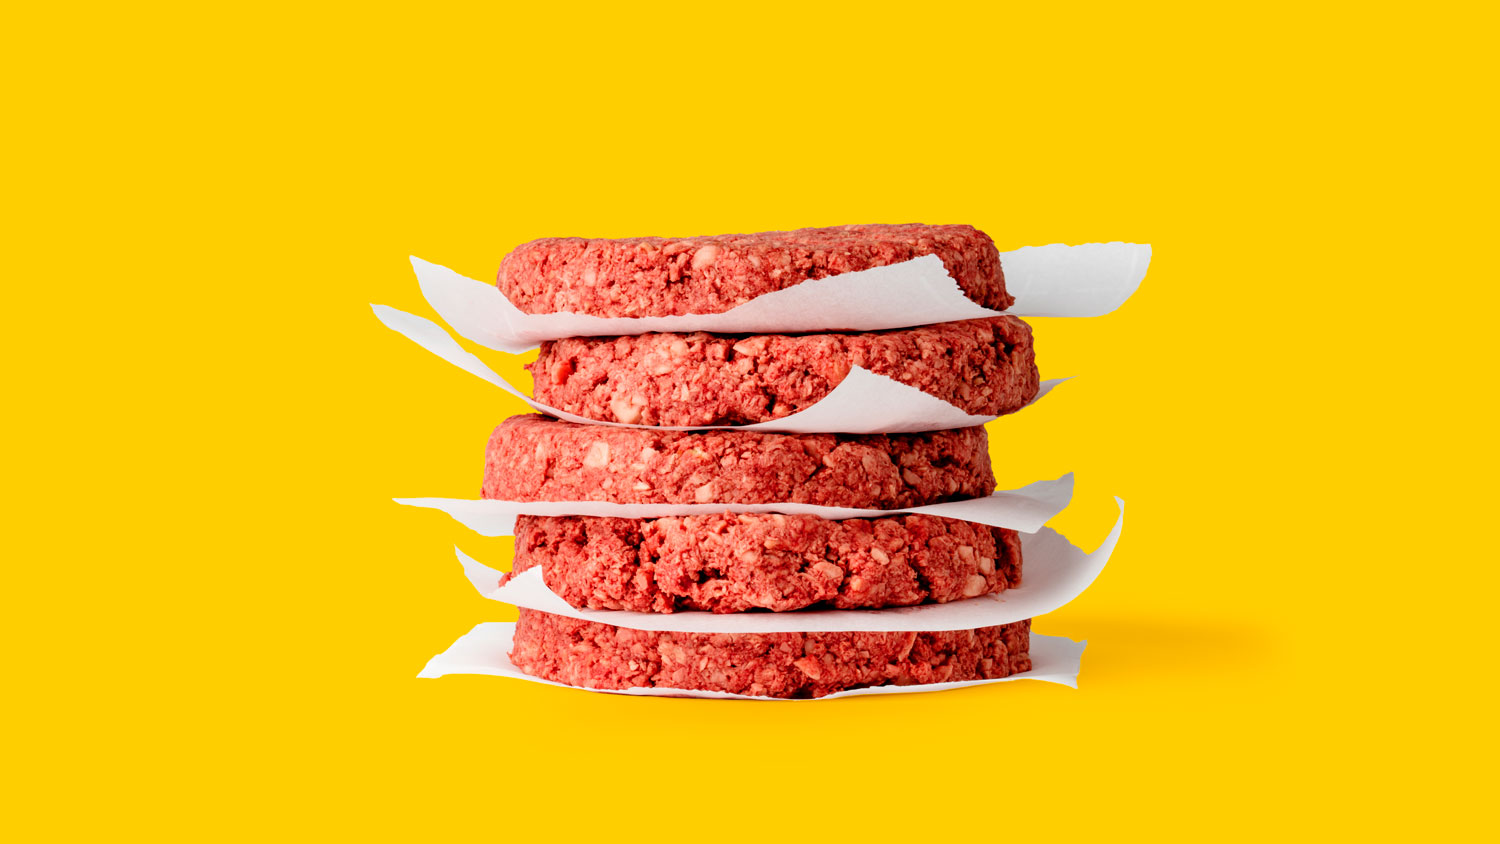 Are Millennials Raising an Army of Plant-Based Meat Eating Children?